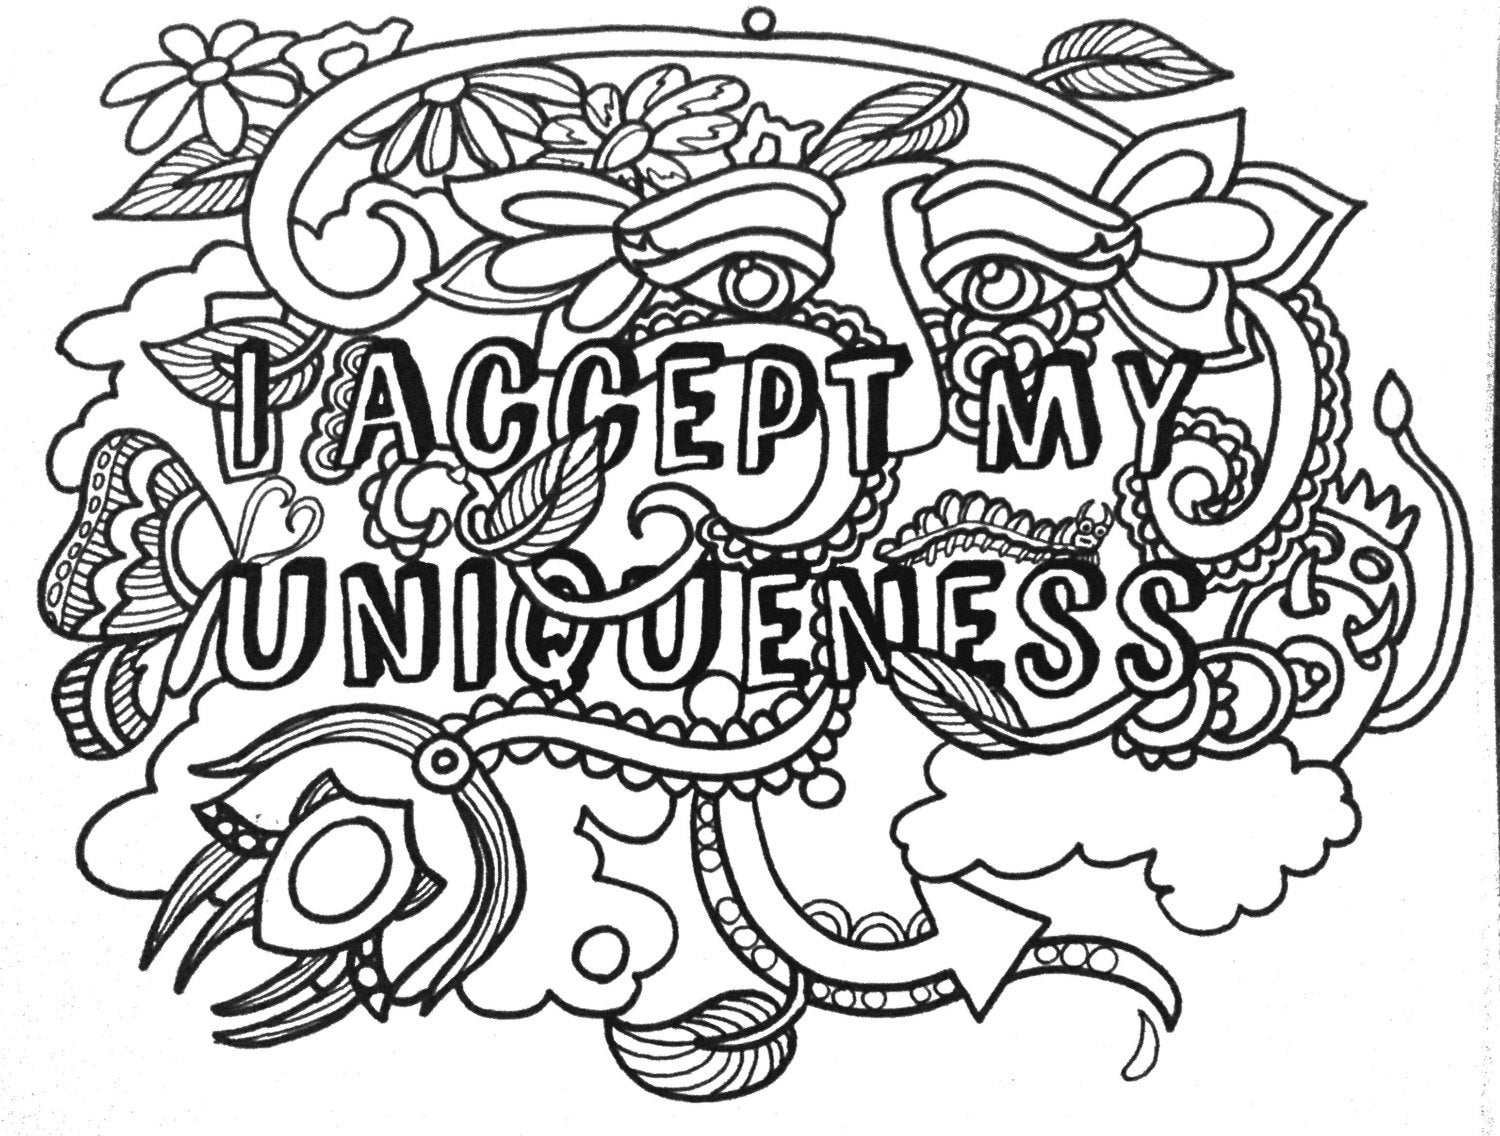 12 Empowering Affirmations Coloringpages Vol 1 Original